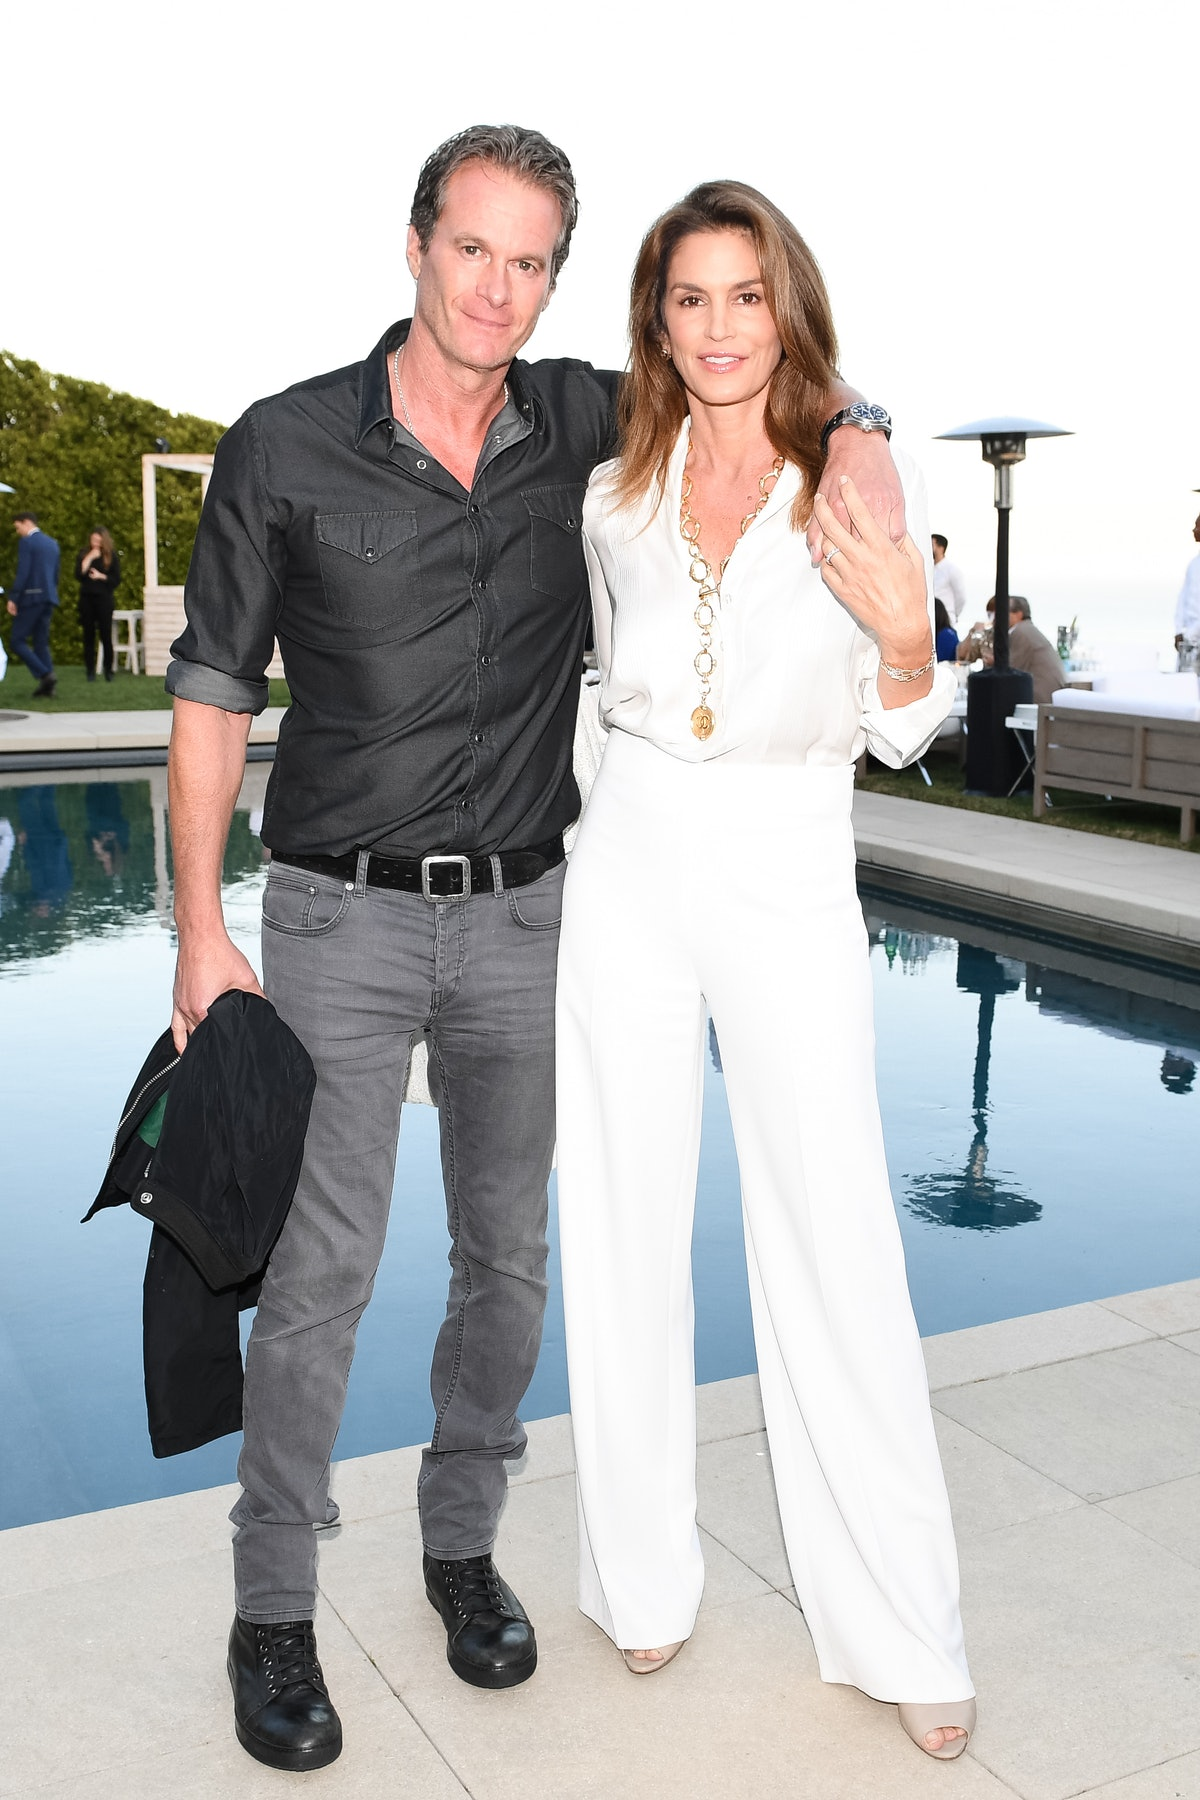 CHANEL DINNER CELEBRATING OUR MAJESTIC OCEANS : A BENEFIT FOR NRDC